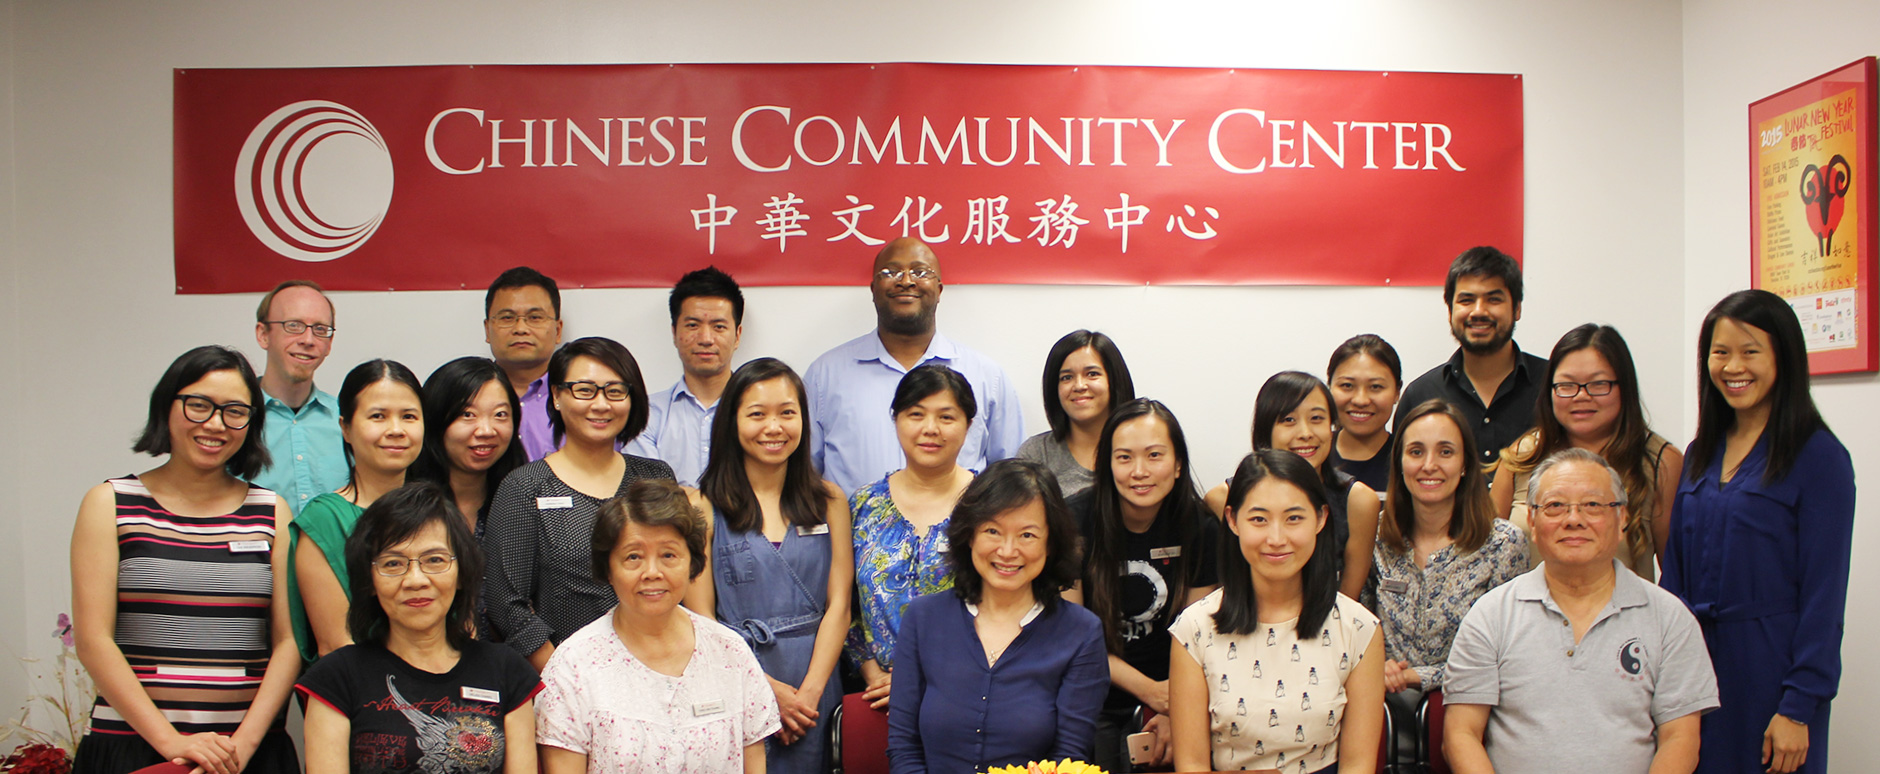 Career Opportunities | Chinese Community Center